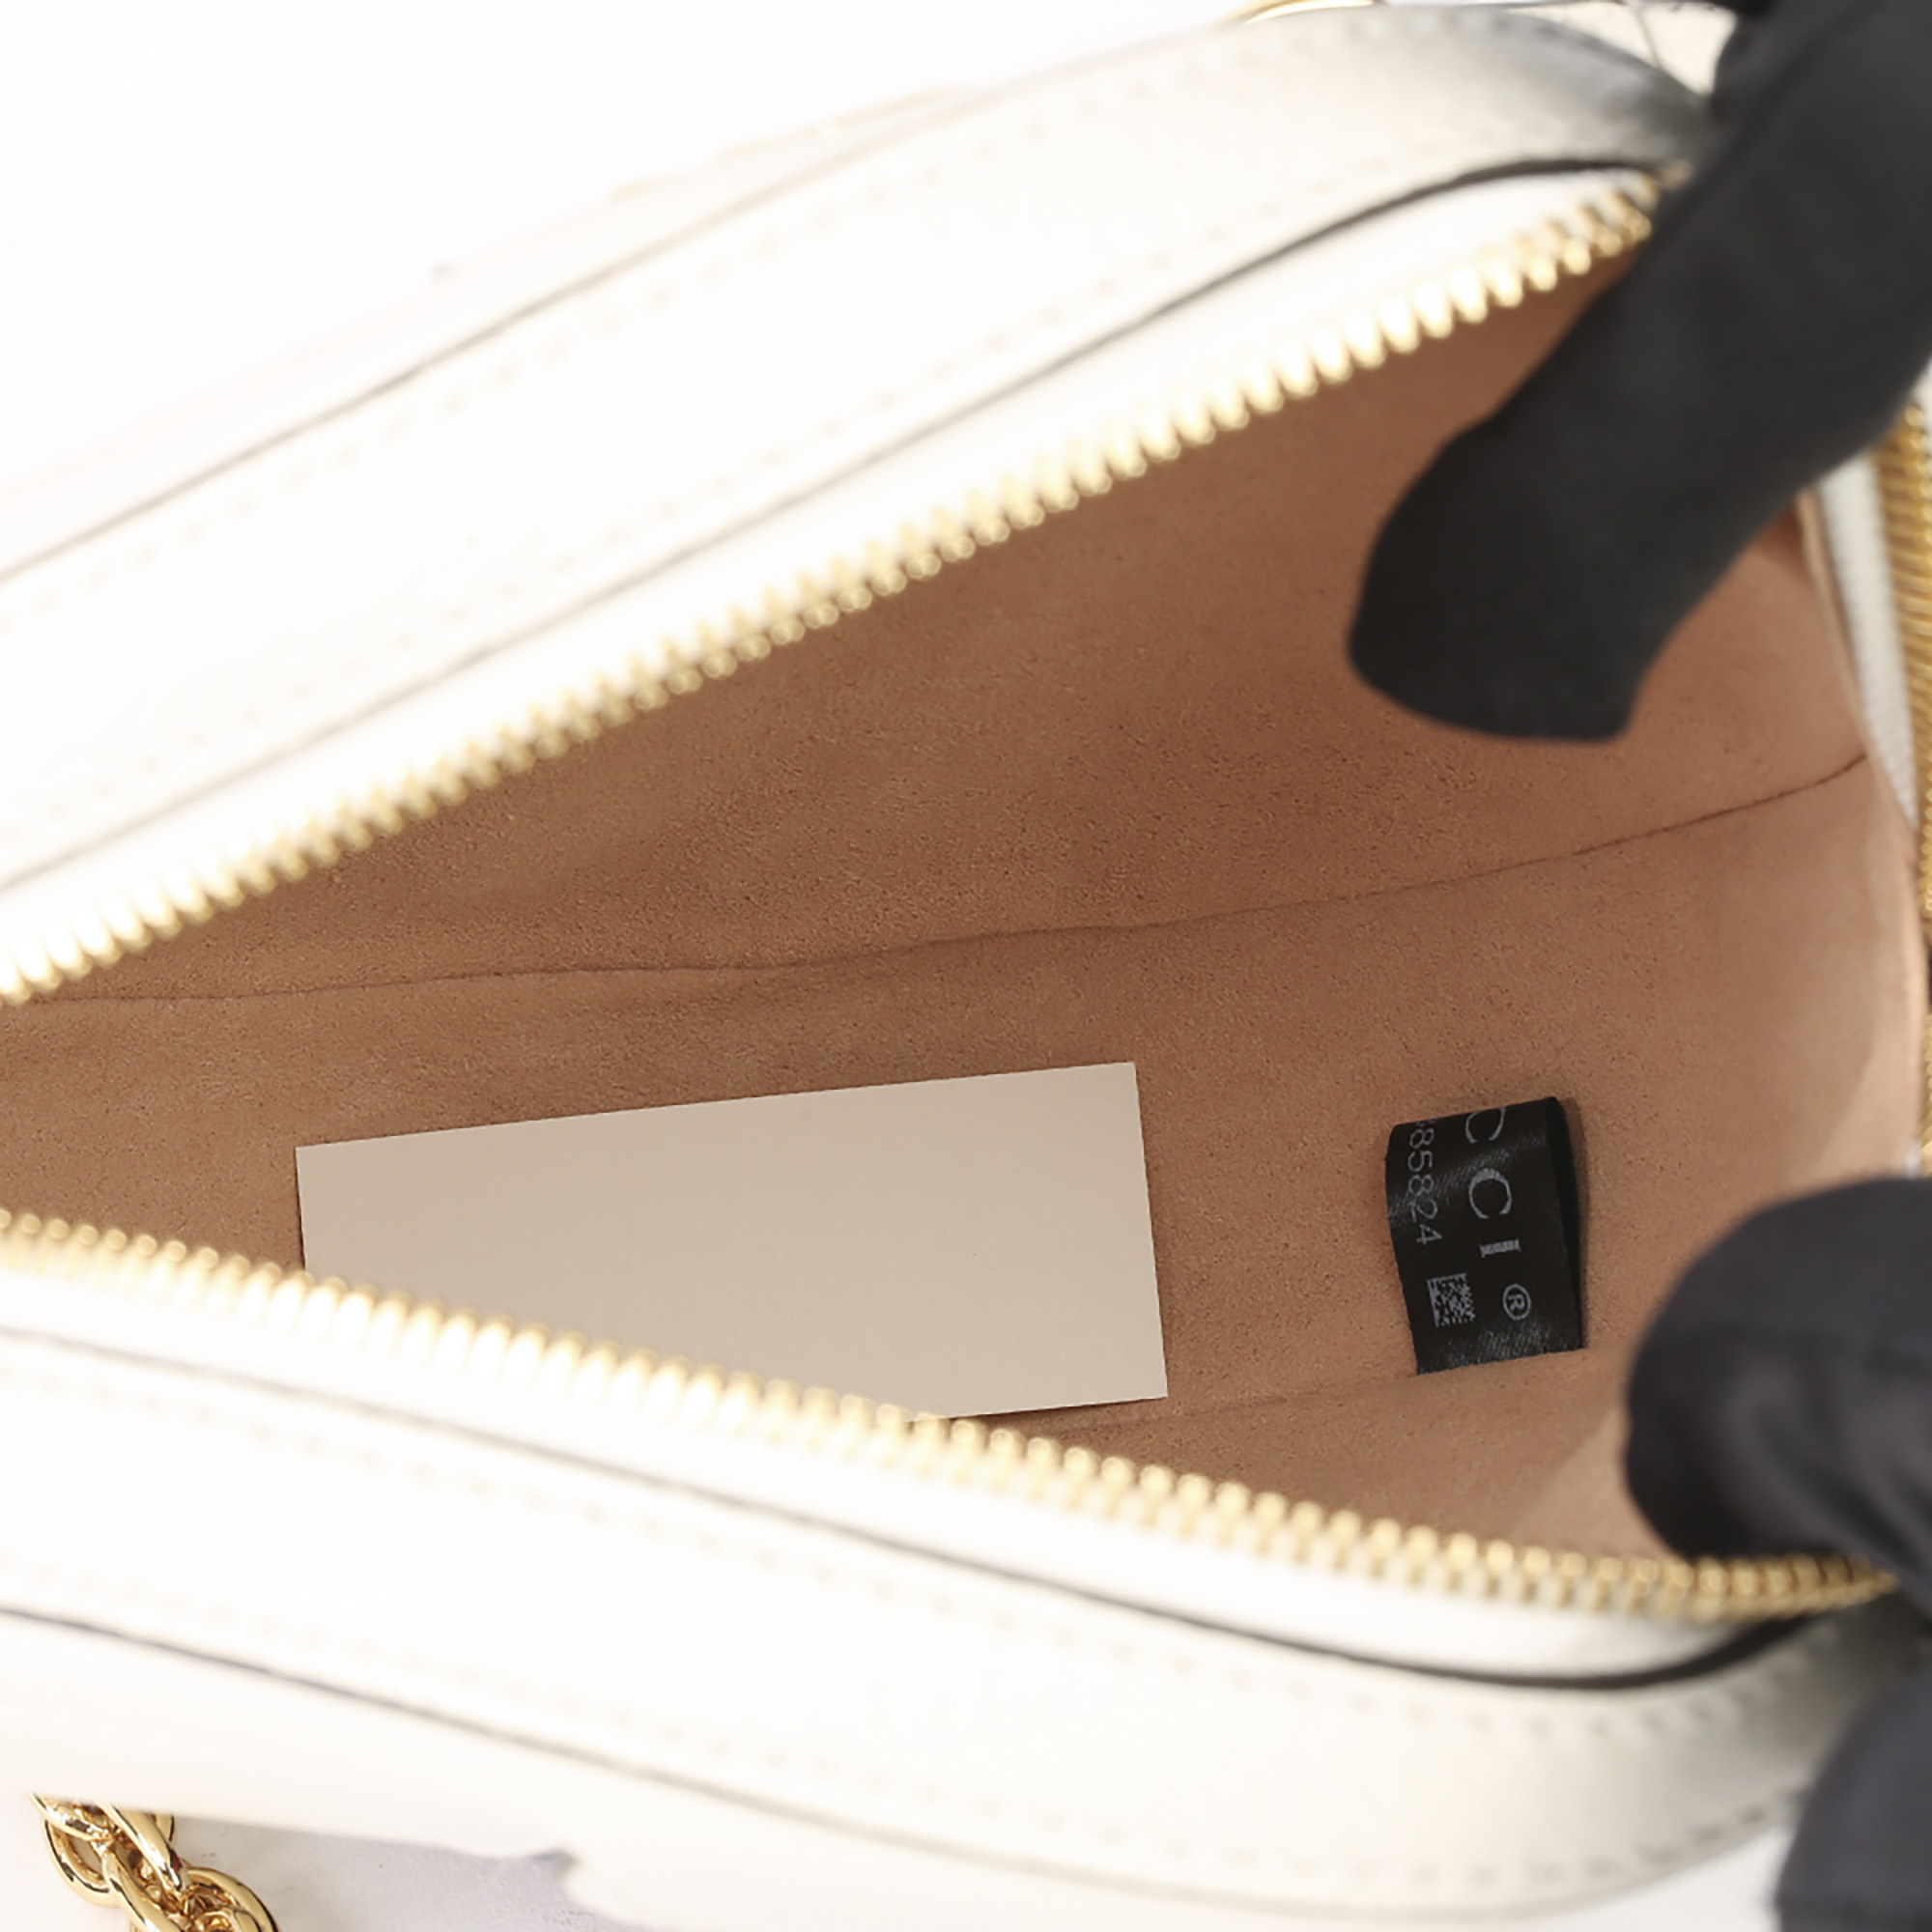 Gucci White Pigskin Leather Web Mini Round Orphidia Shoulder Bag - Image 3 of 11